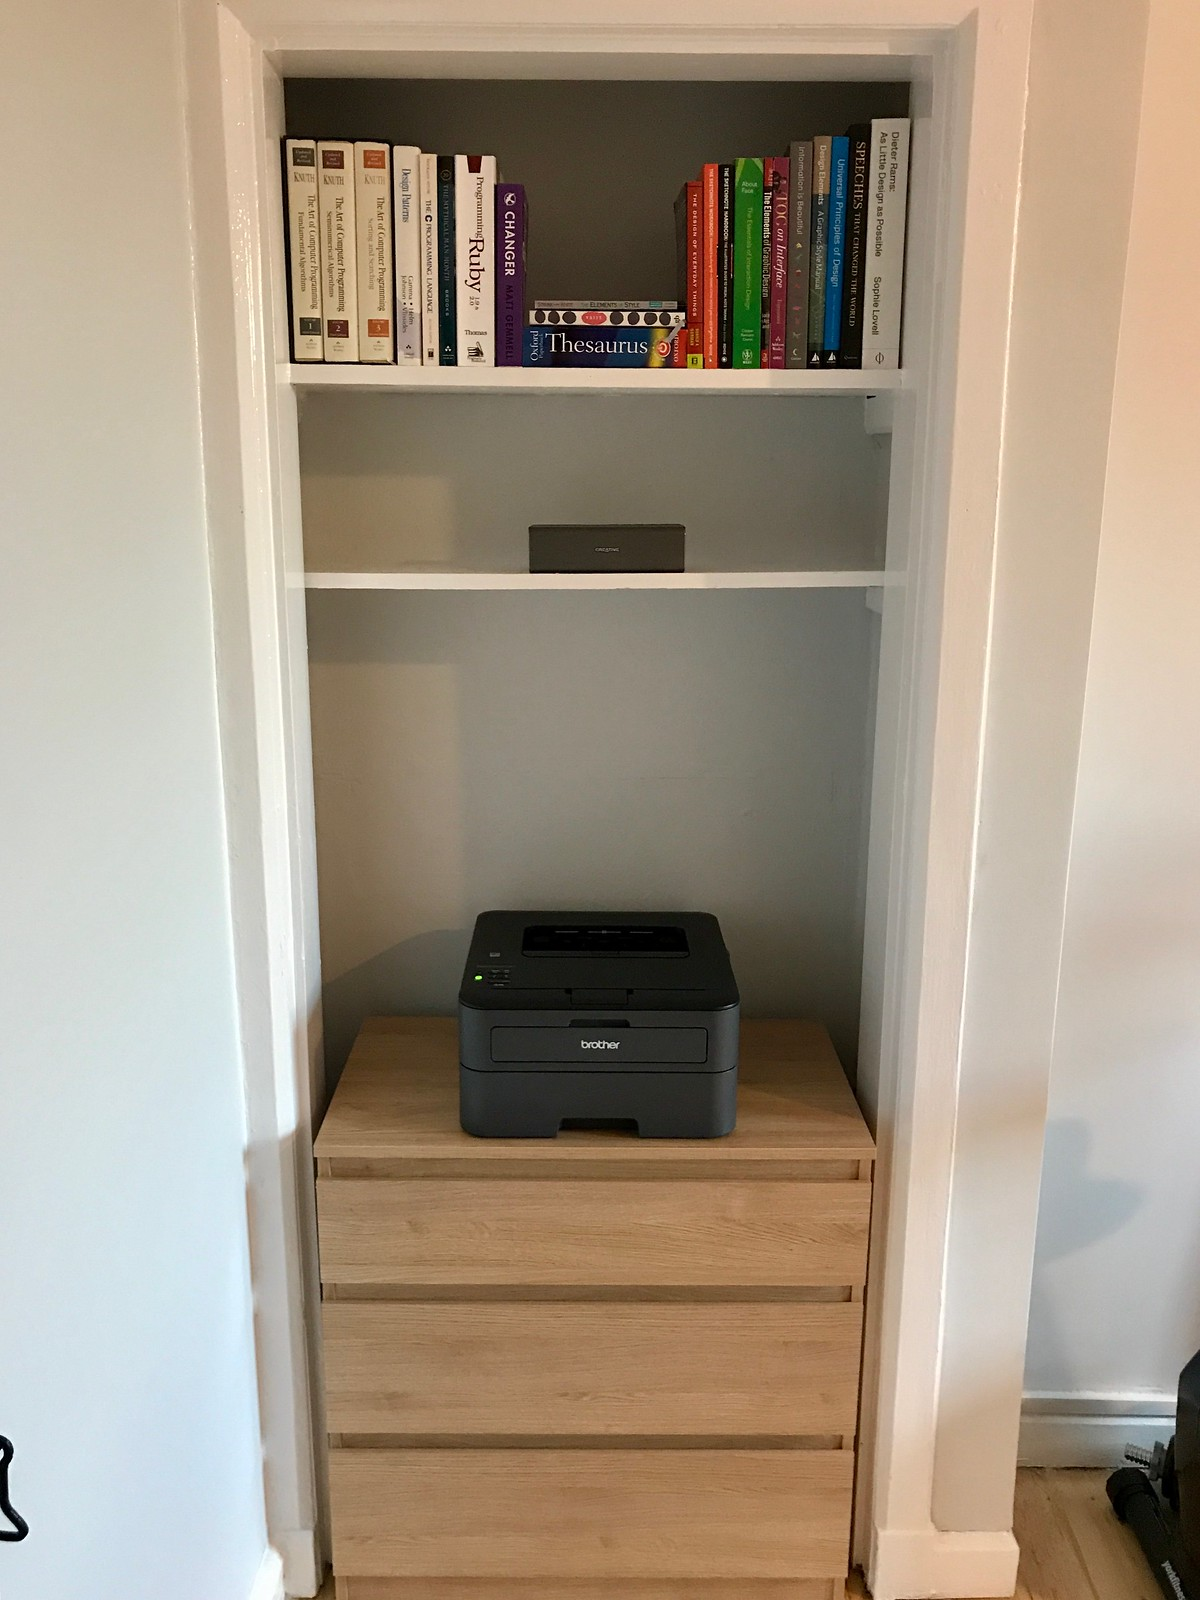 Photo of the printer and stationery-cupboard area directly opposite the door. It's a recessed area in the wall, within a shallow doorway, called an Edinburgh Press. Within it, there's a chest of drawers in oak veneer, 70cm high, holding a laser printer with three drawers below. Above, there are two shelves. The topmost has books, and the second has a Bluetooth speaker brick. No wires are visible anywhere.